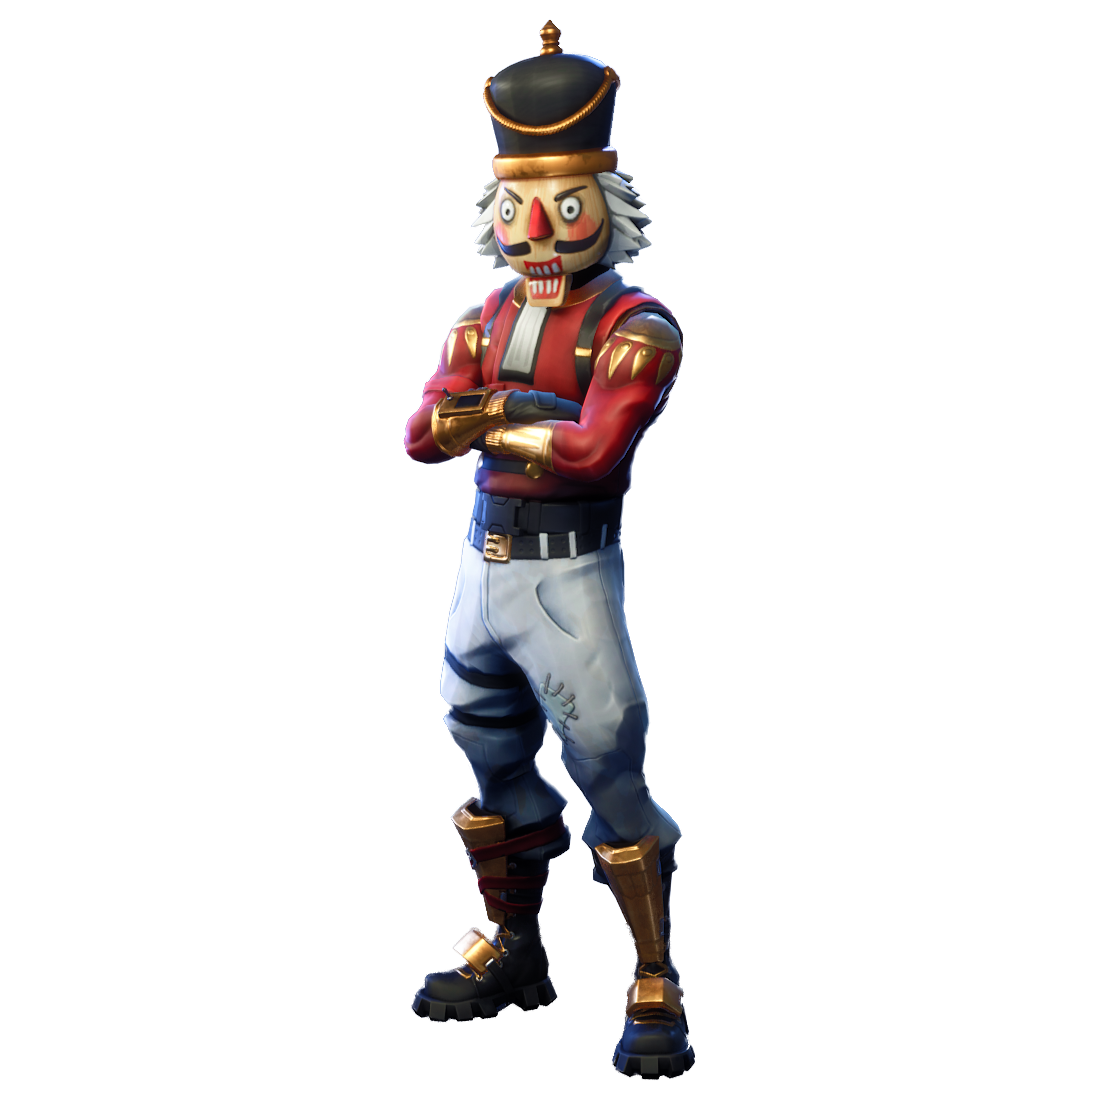 fortnite crackshot png image purepng transparent 27099